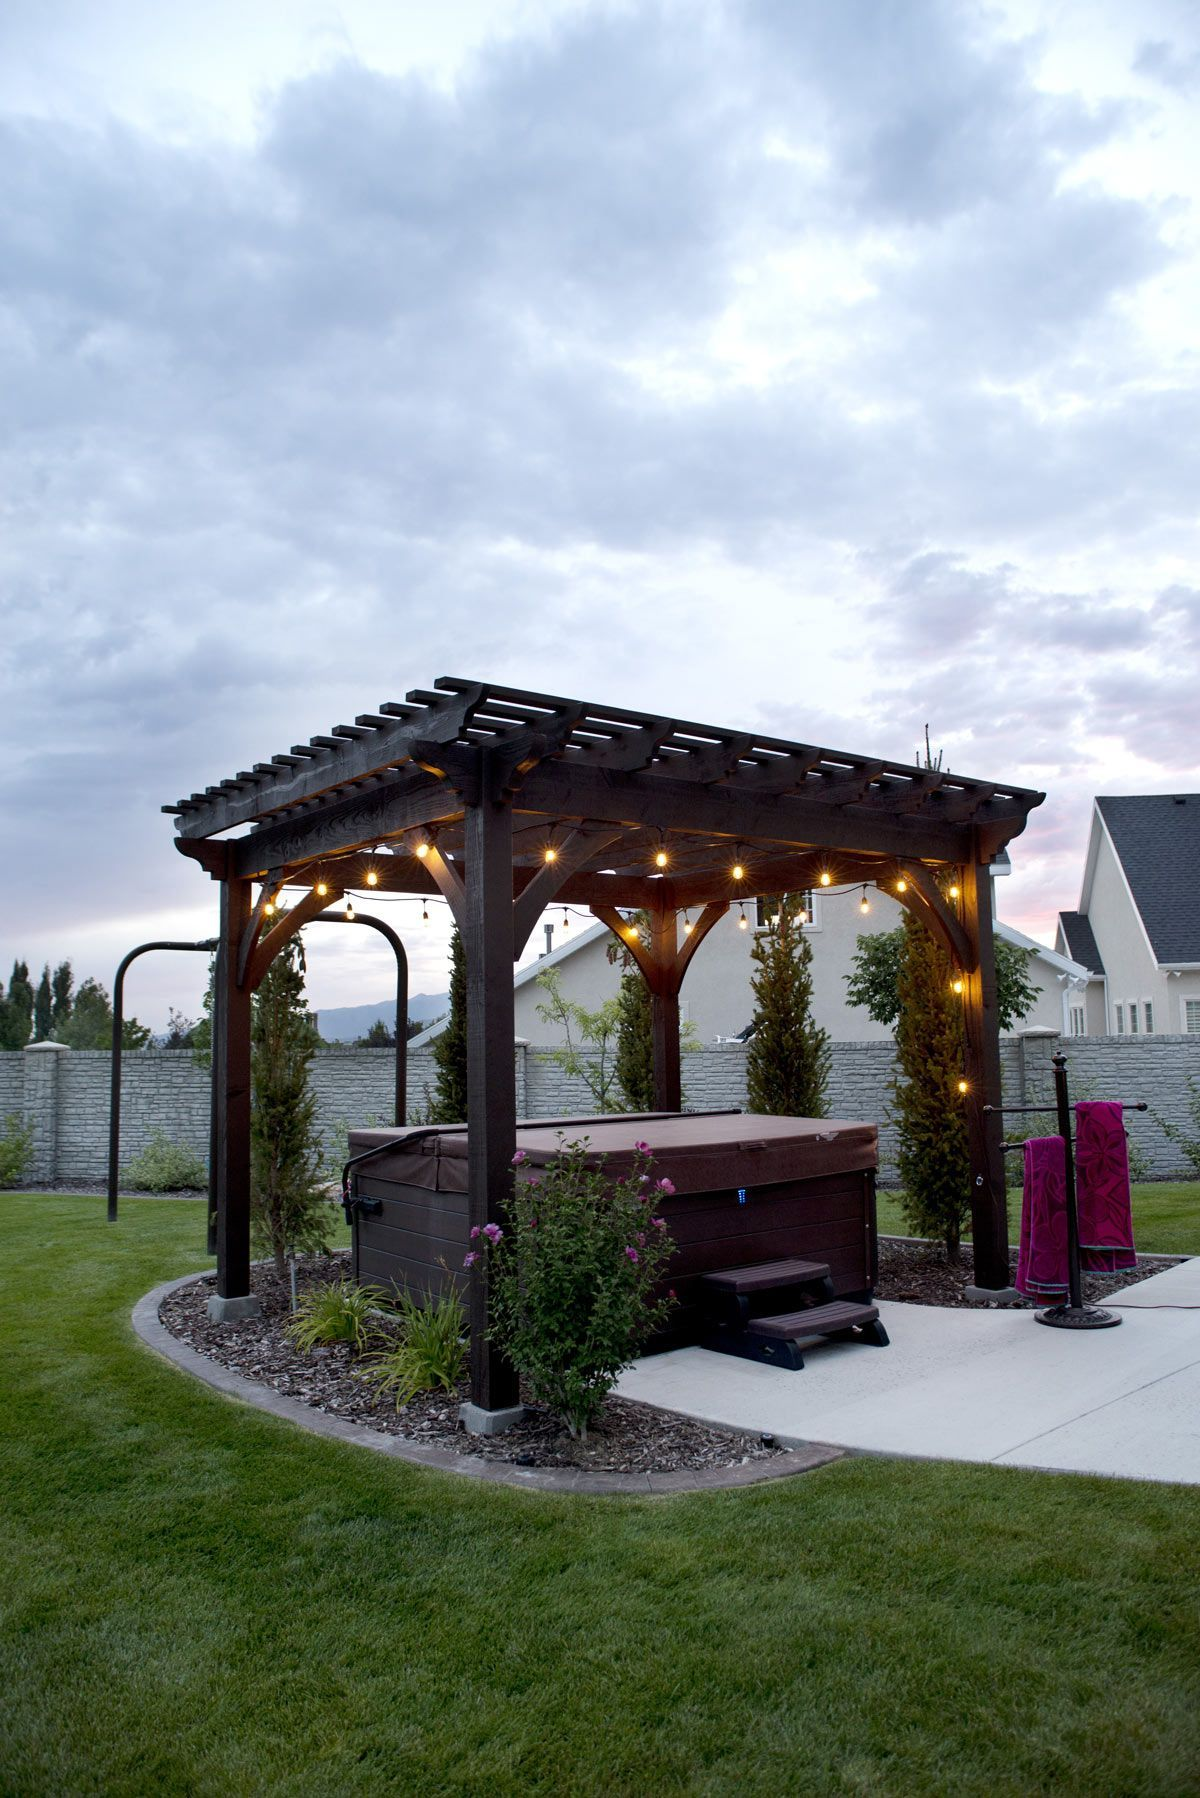 Heavenly haven diy pergola over hot tub with a timber frame trellis for hanging a hammock